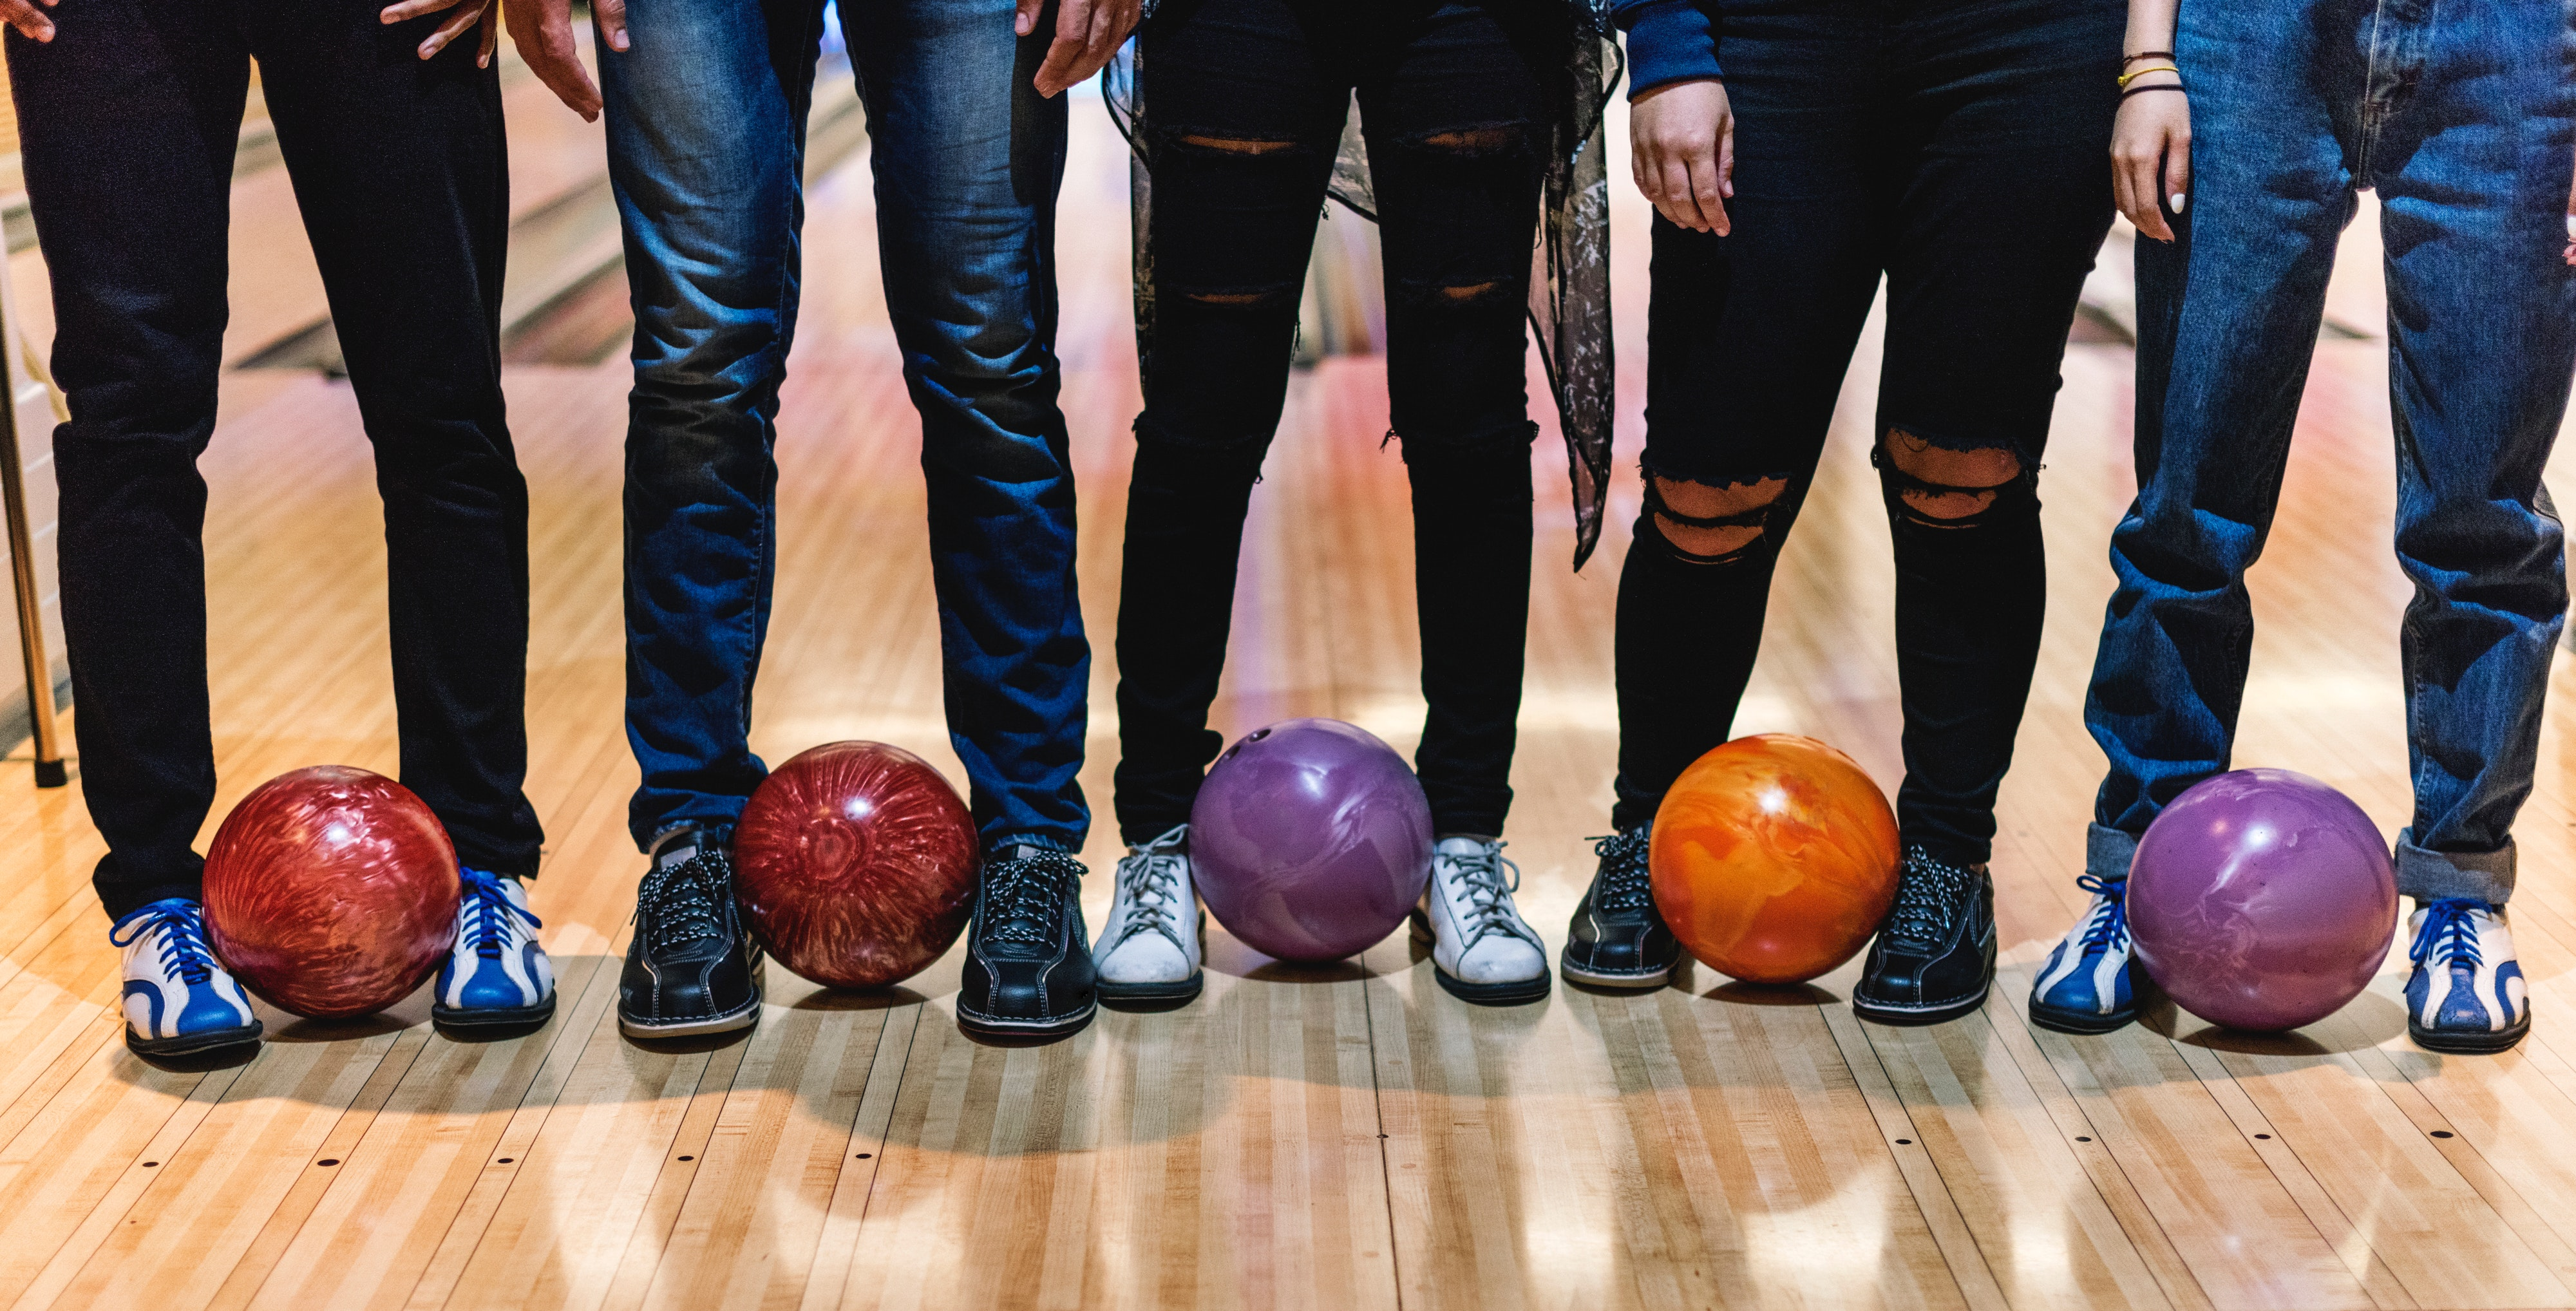 image of 5 people (legs only) standing with a bowling ball between their feet